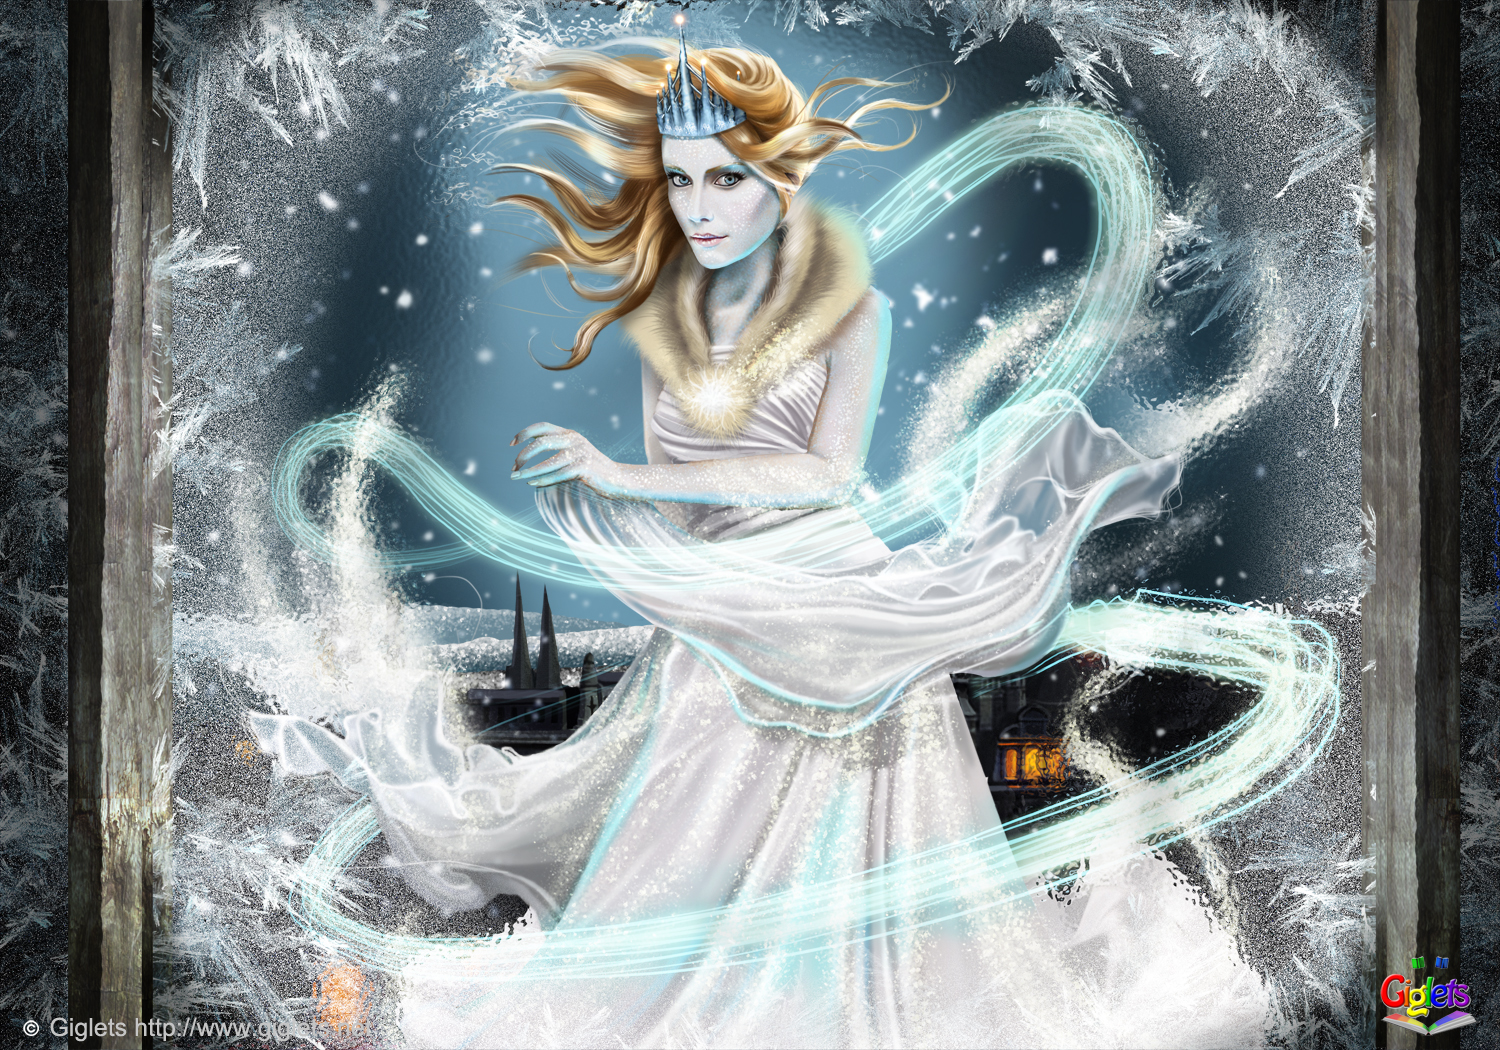 The Snow Queen  Backgrounds, Compatible - PC, Mobile, Gadgets| 1500x1050 px